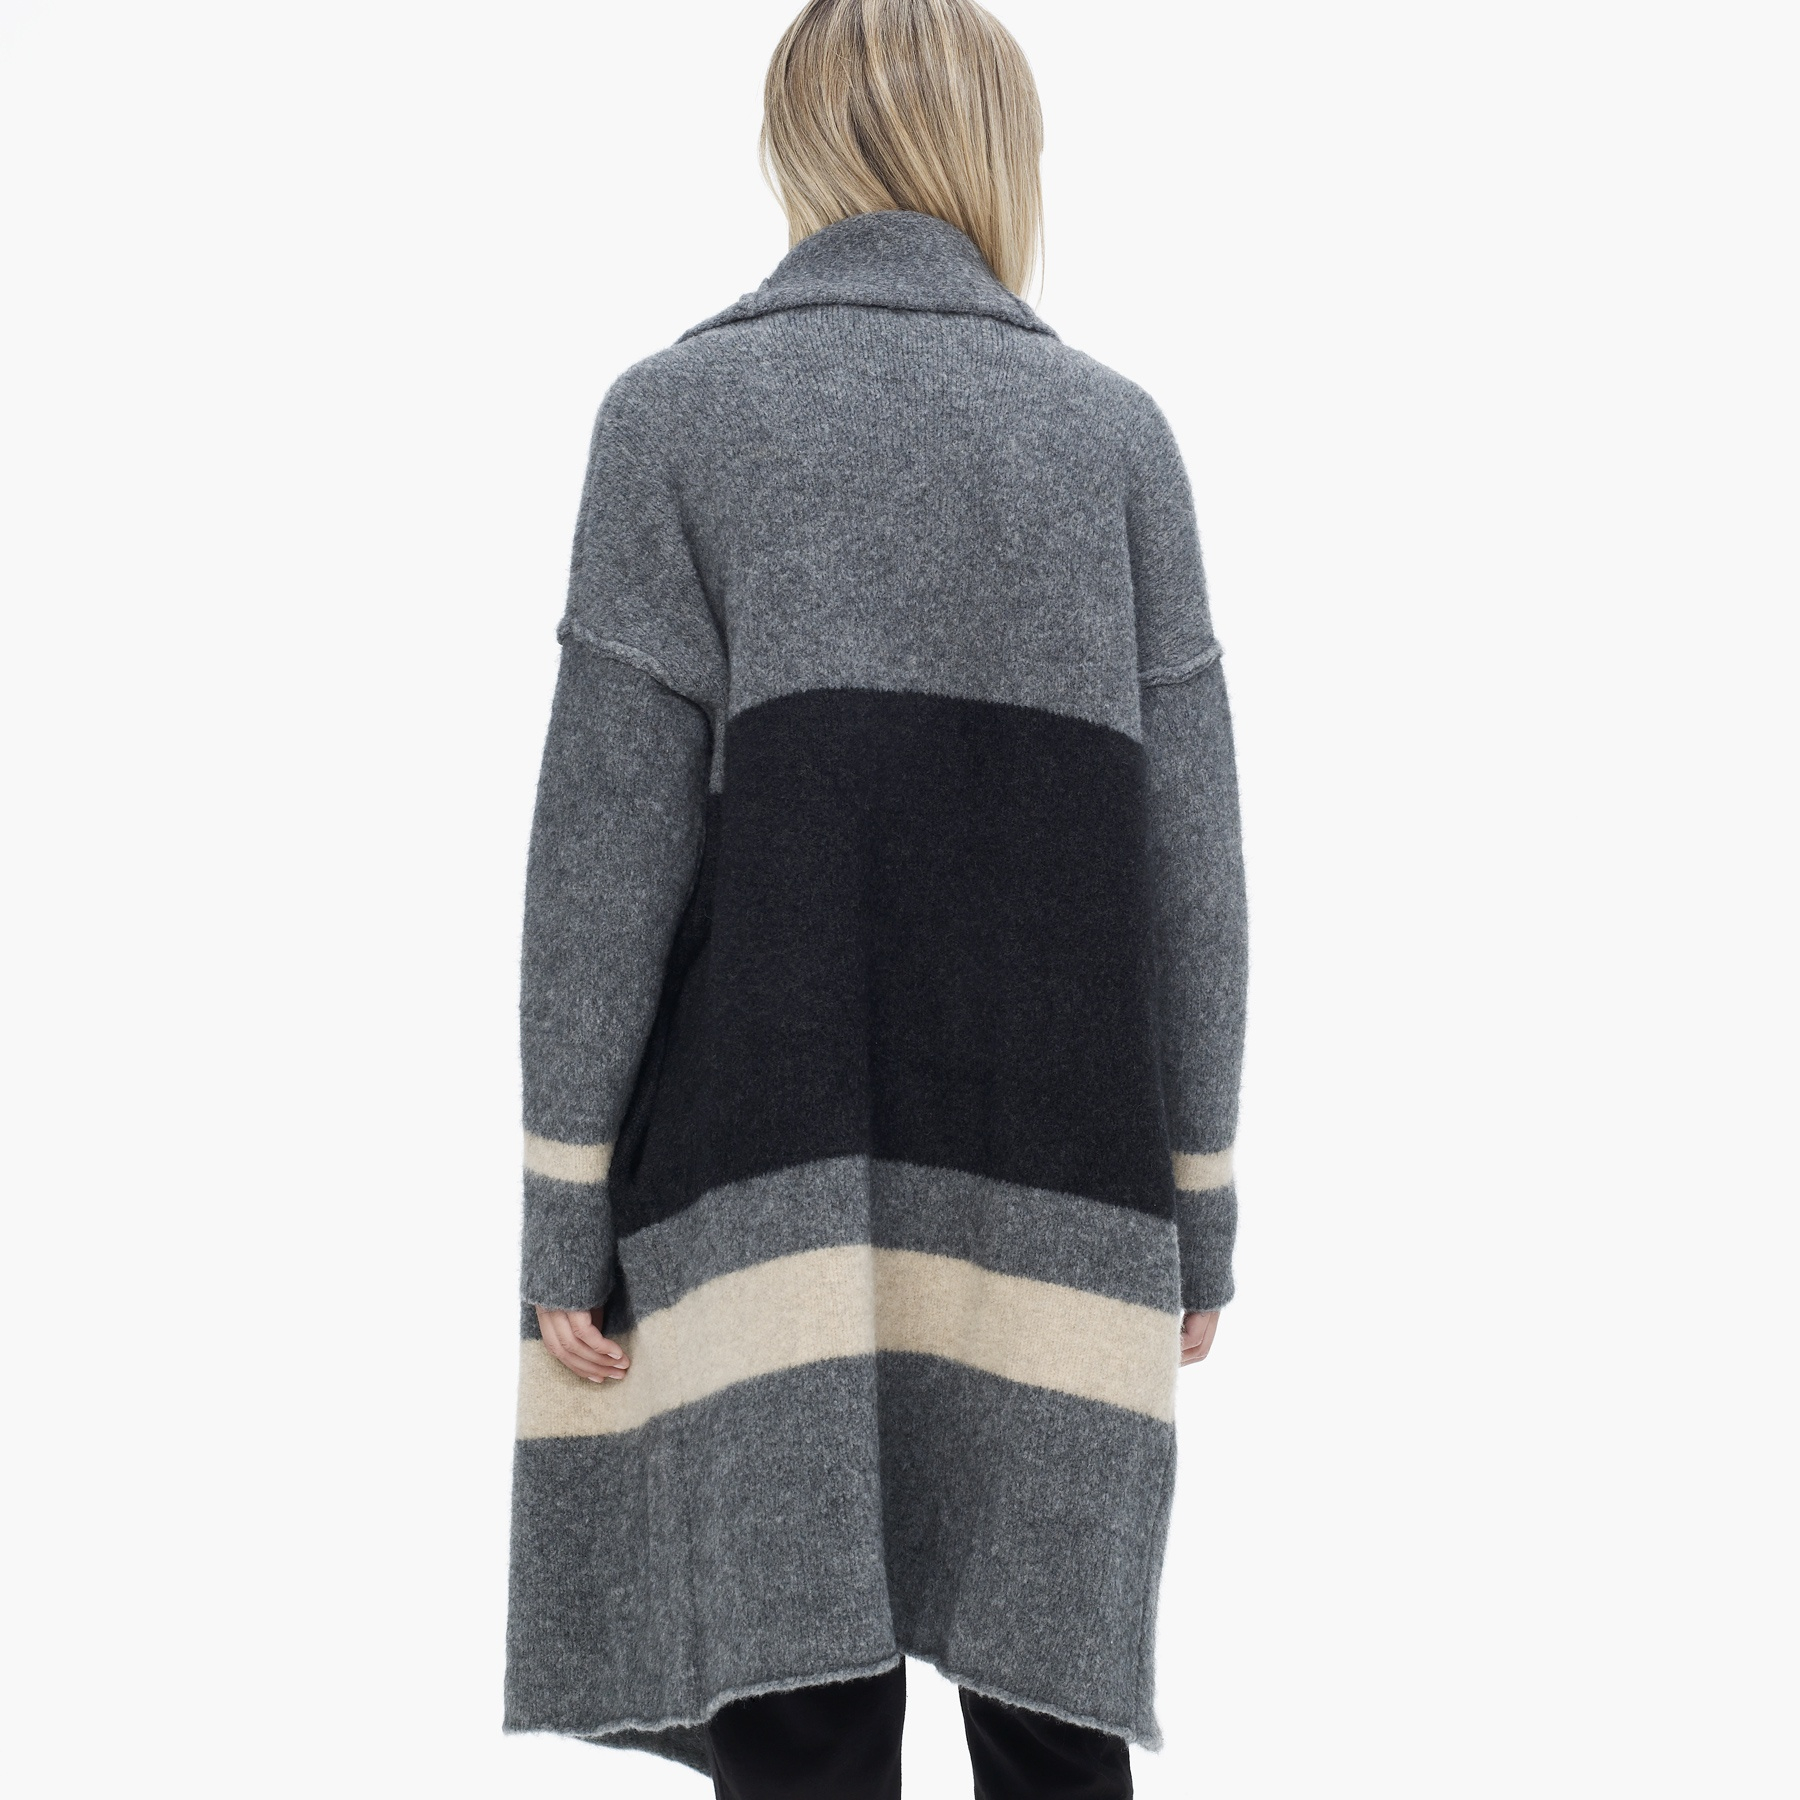 James perse Striped Blanket Sweater Coat in Gray | Lyst